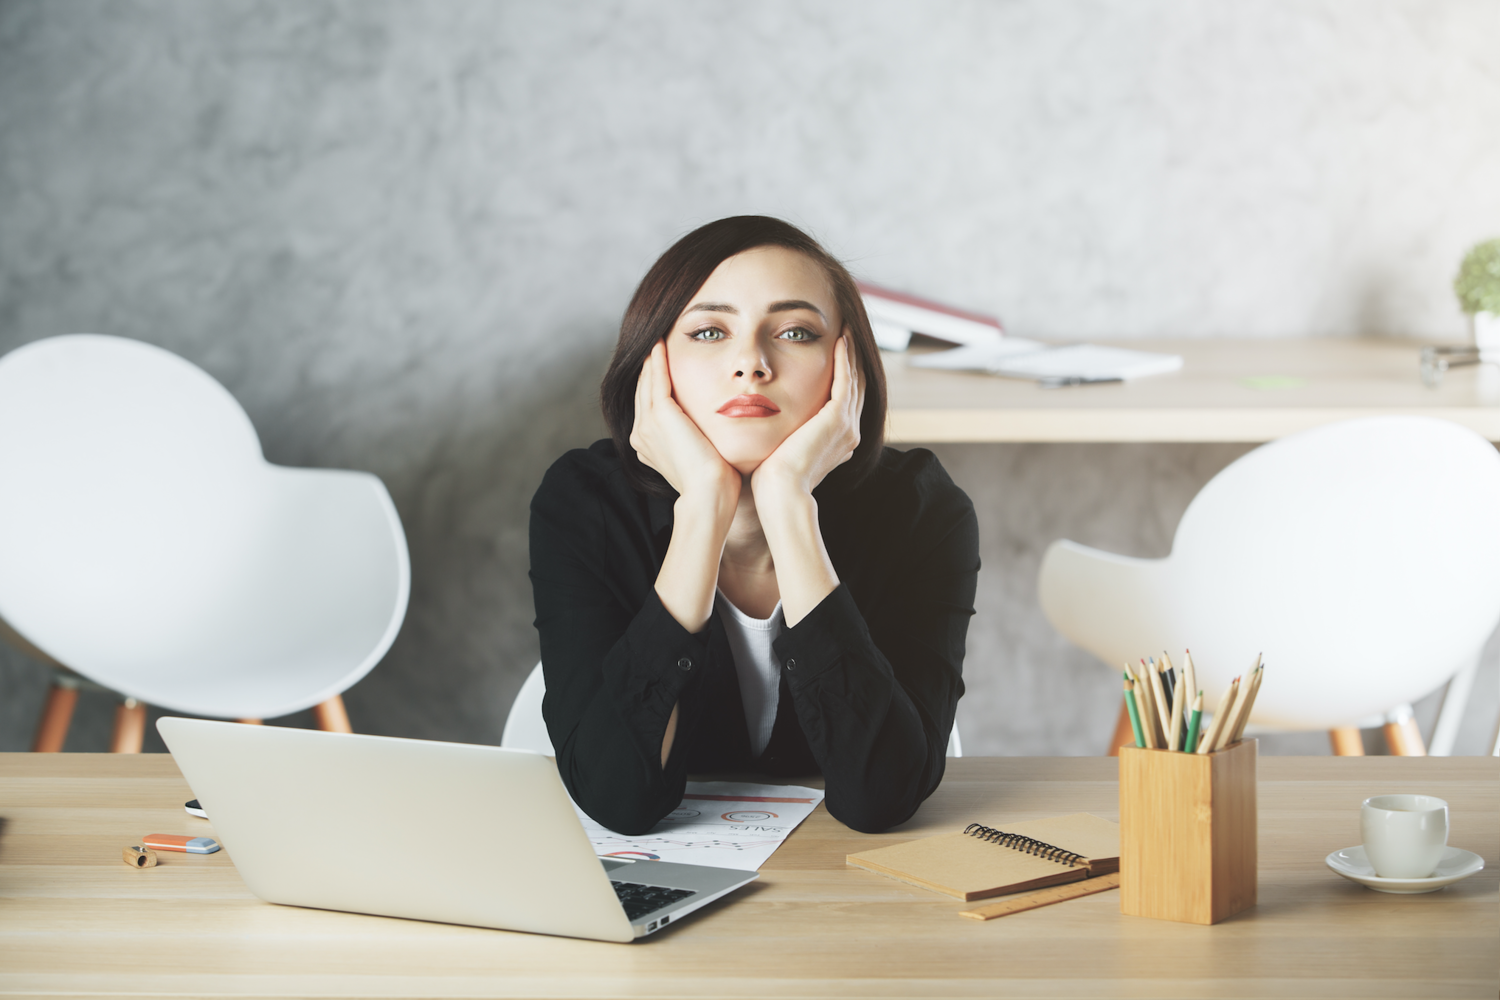 Overcoming frustration at work